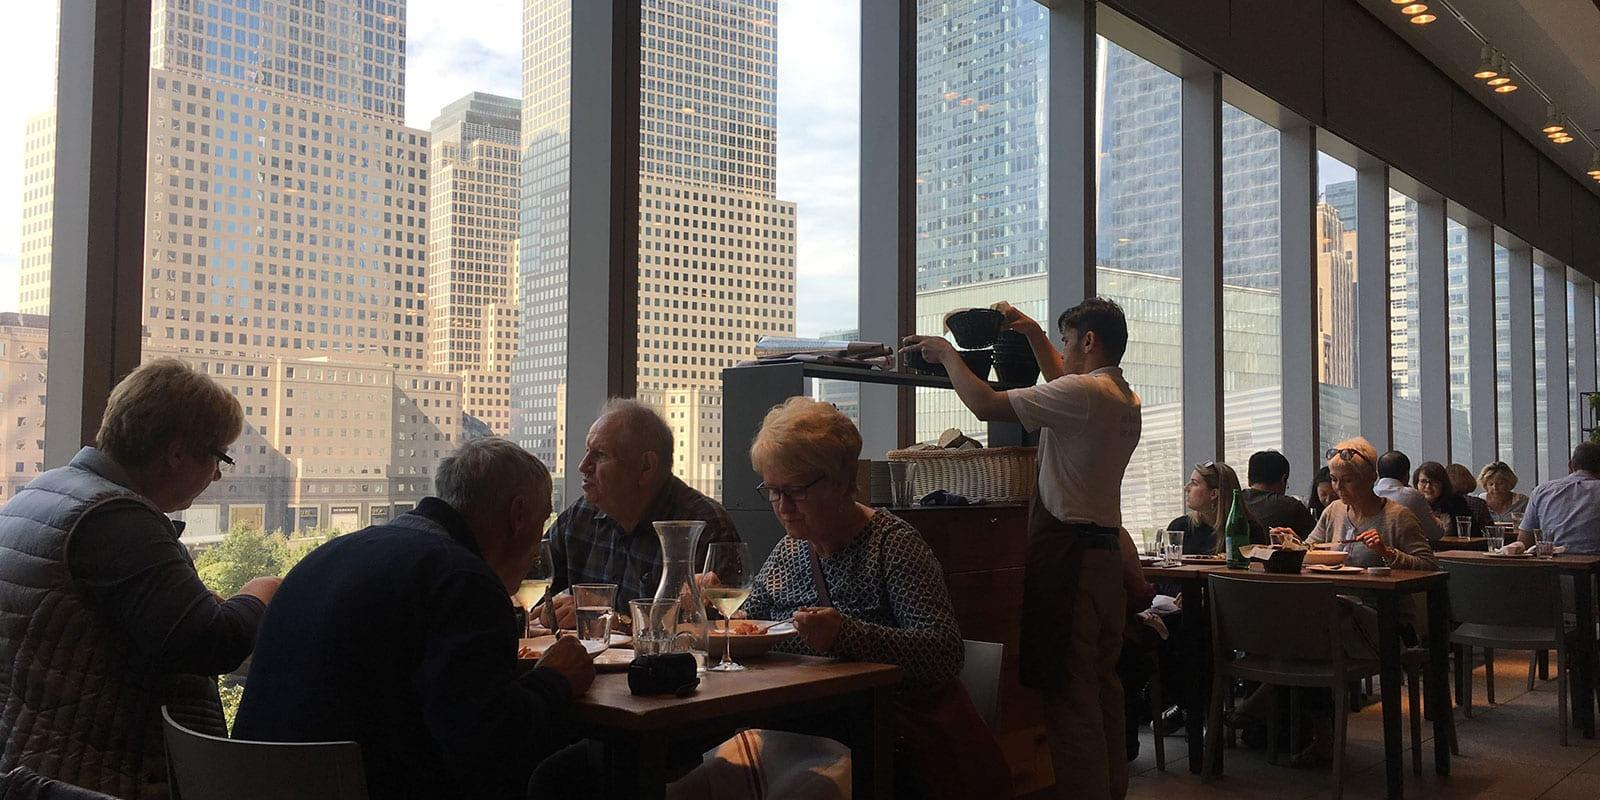 EATALY Downtown at the One World Trade Center